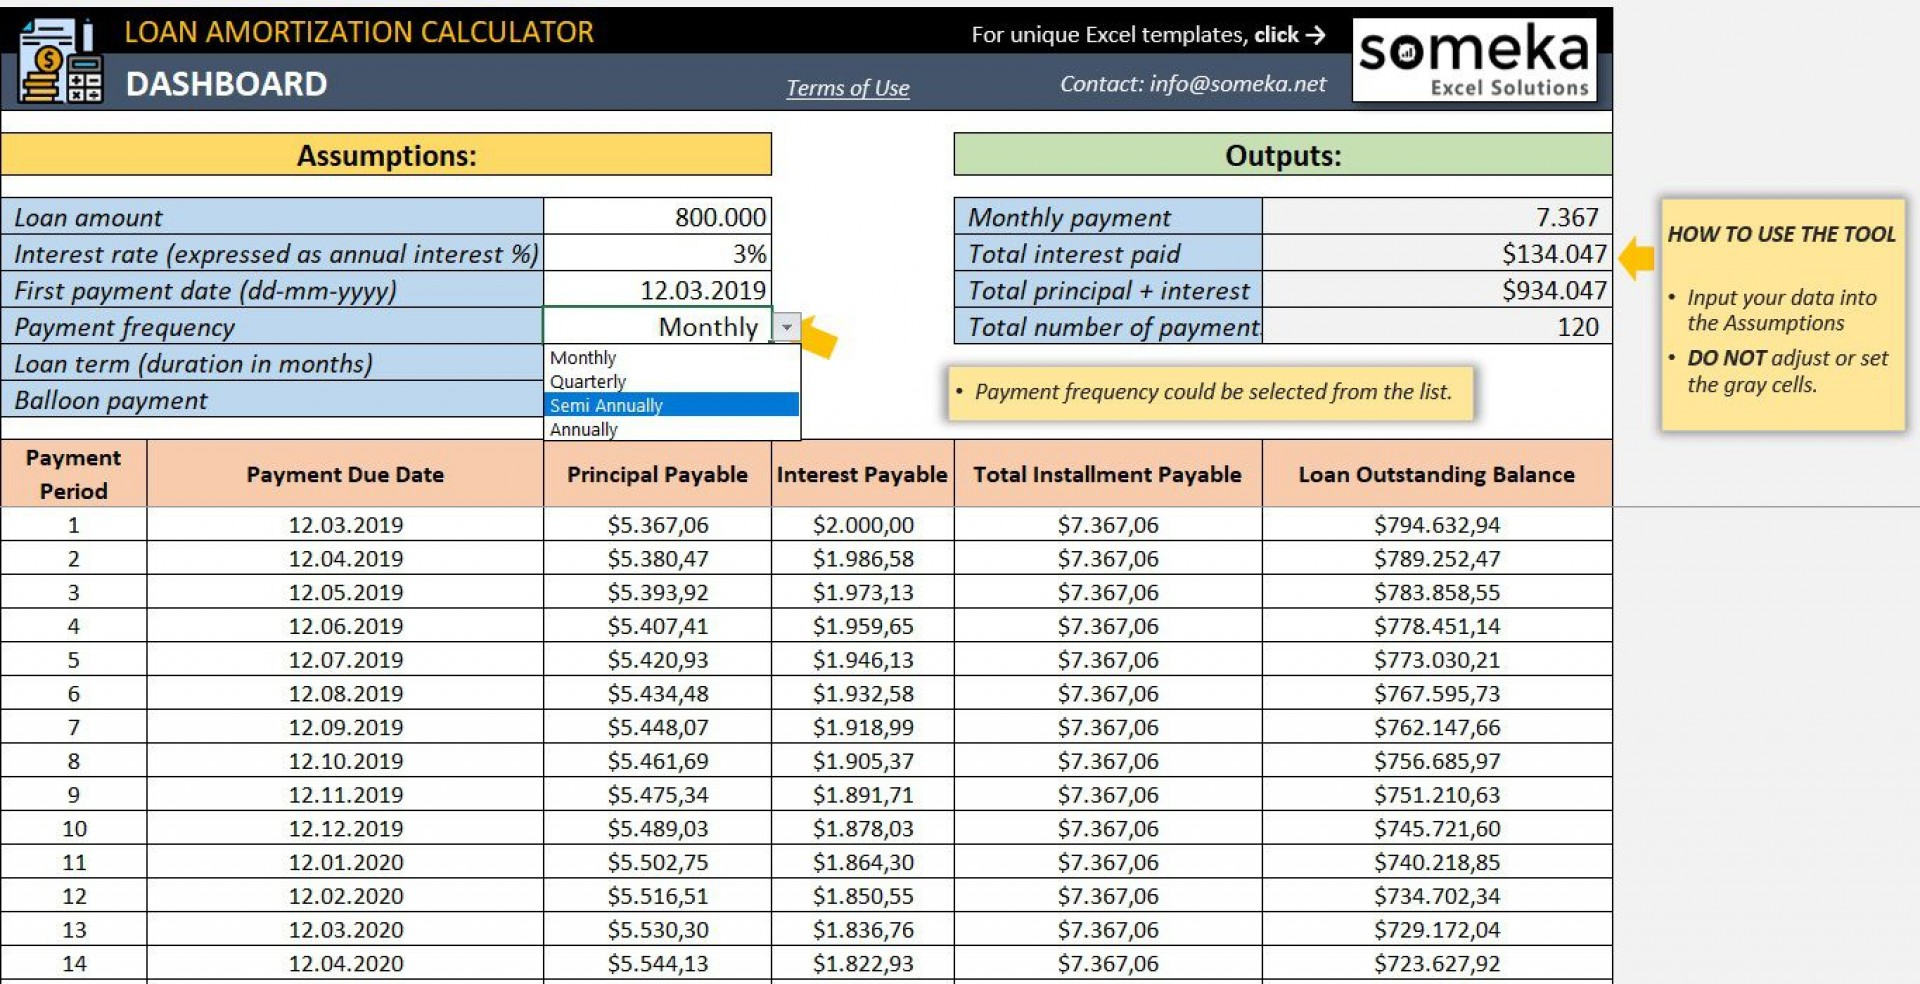 006 Amazing Loan Amortization Excel Template High Def  Schedule 2010 Free 20071920